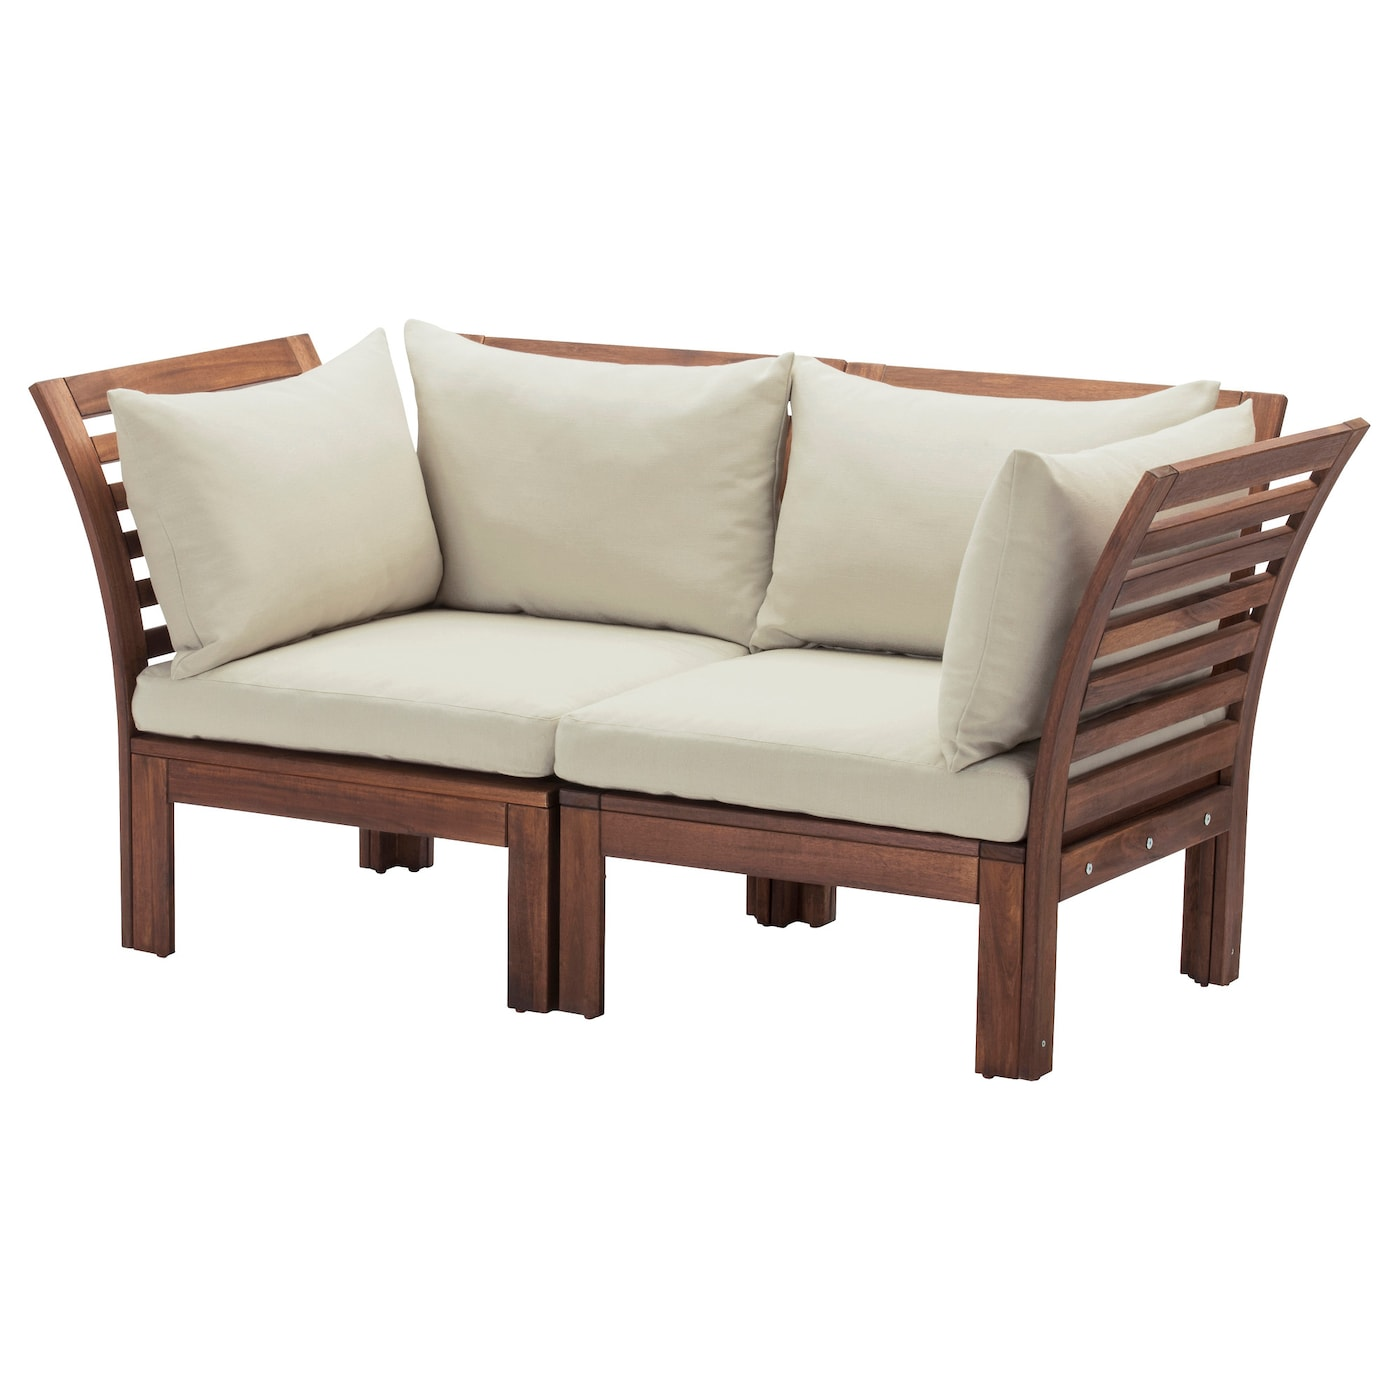 Pplar h ll 2 seat sofa outdoor brown stained beige for Sofa exterior 120 cm